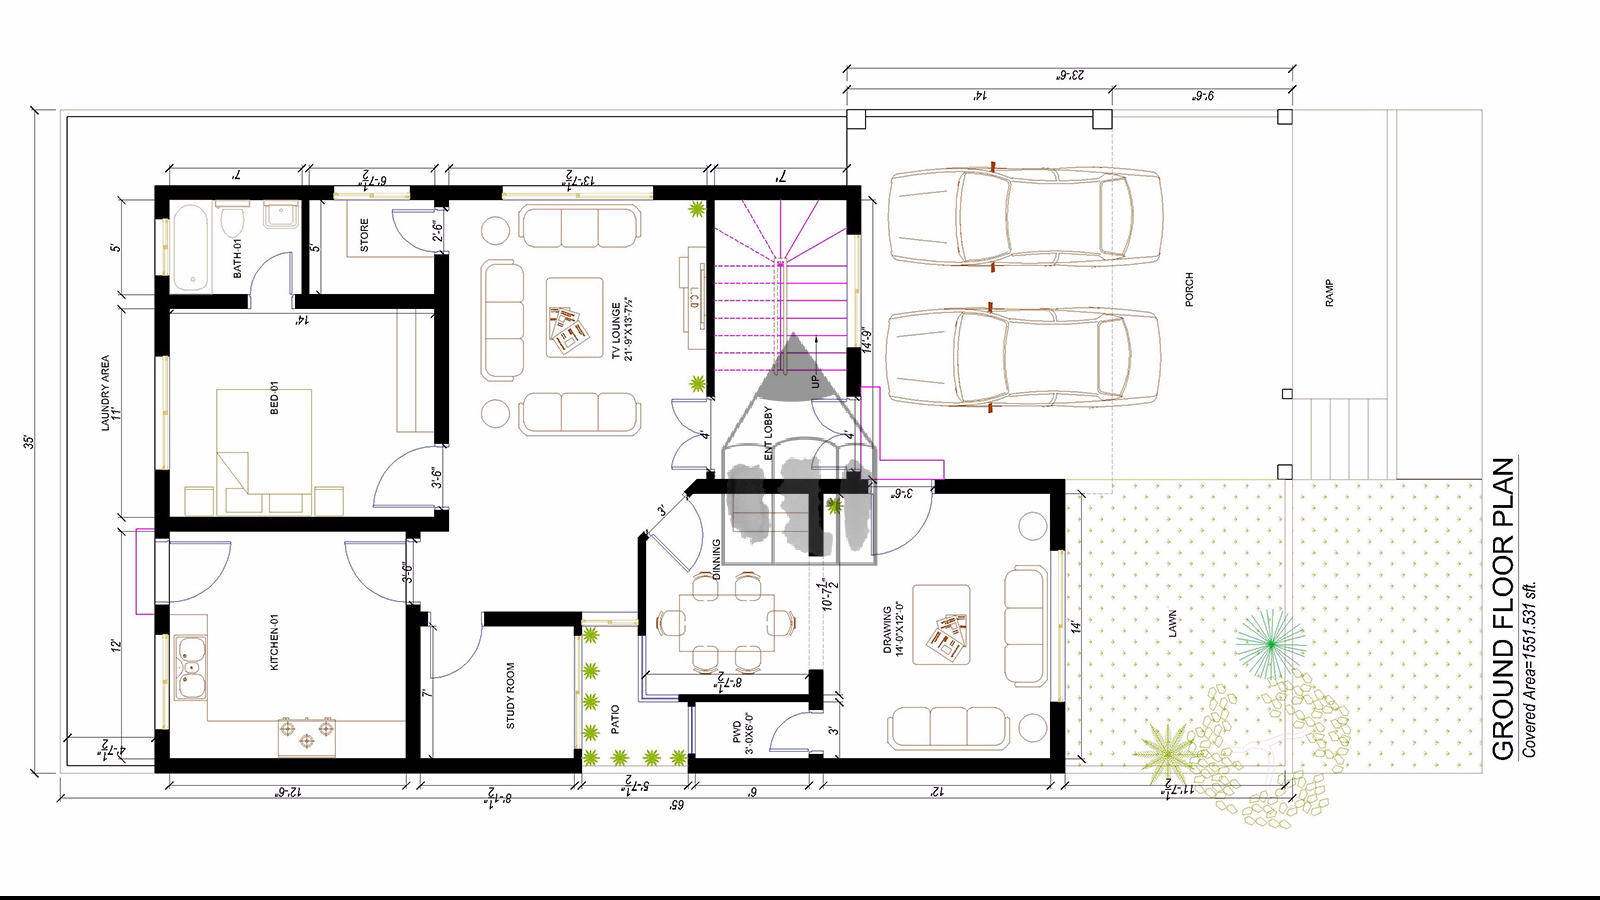 Pakistani house designs 10 marla haris pinterest pakistani house and House map drawing